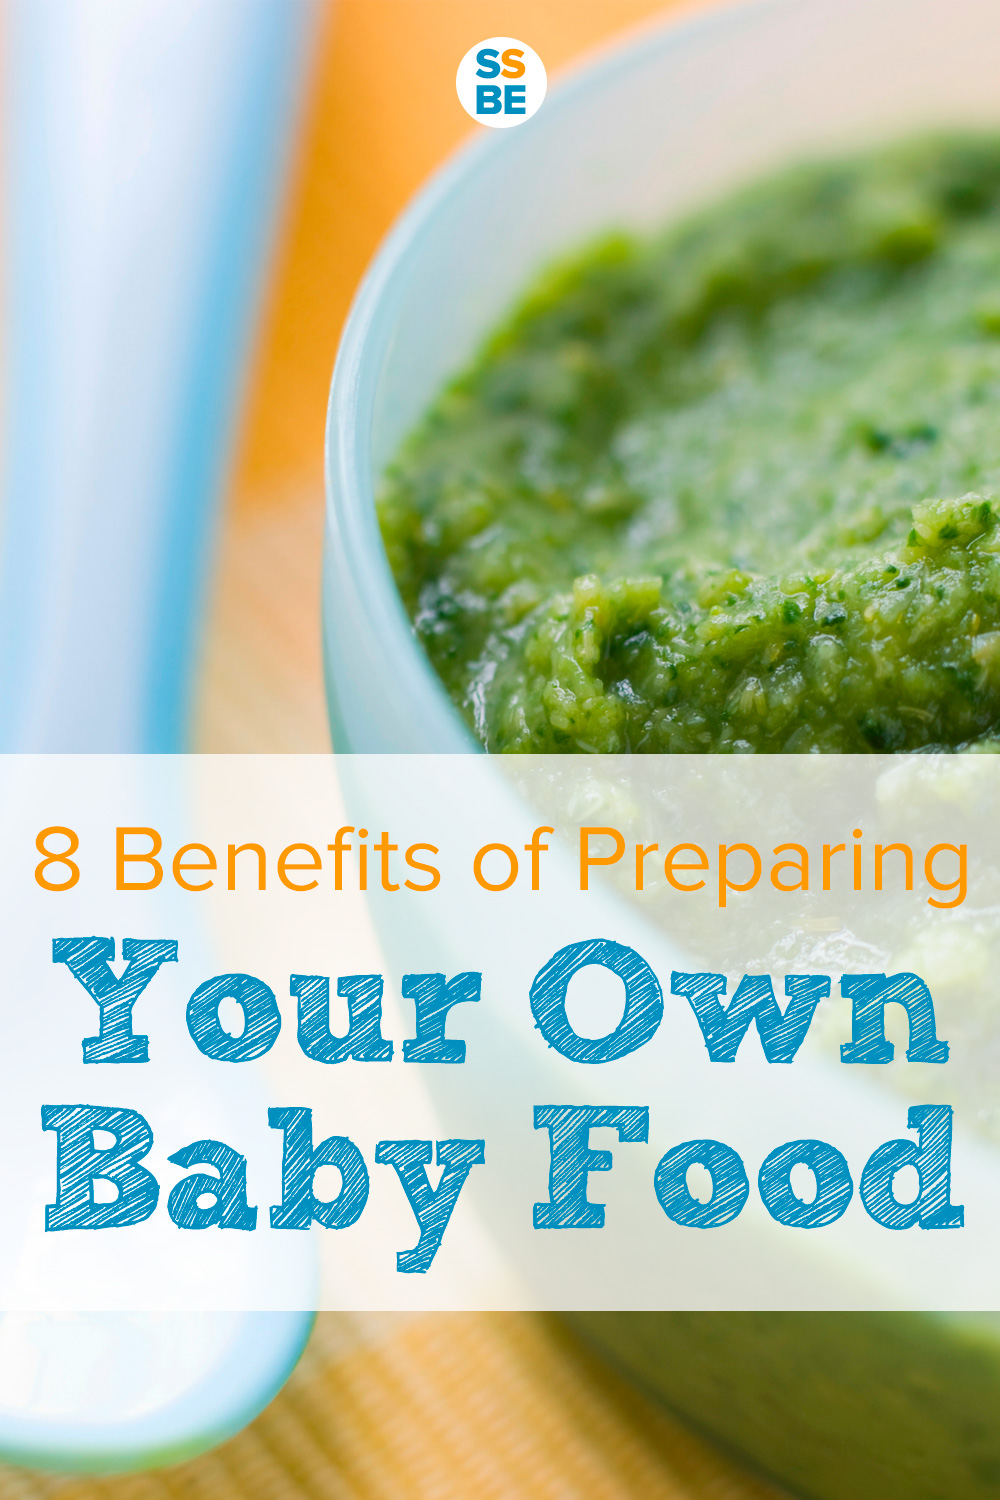 8 Benefits of Preparing Your Own Baby Food